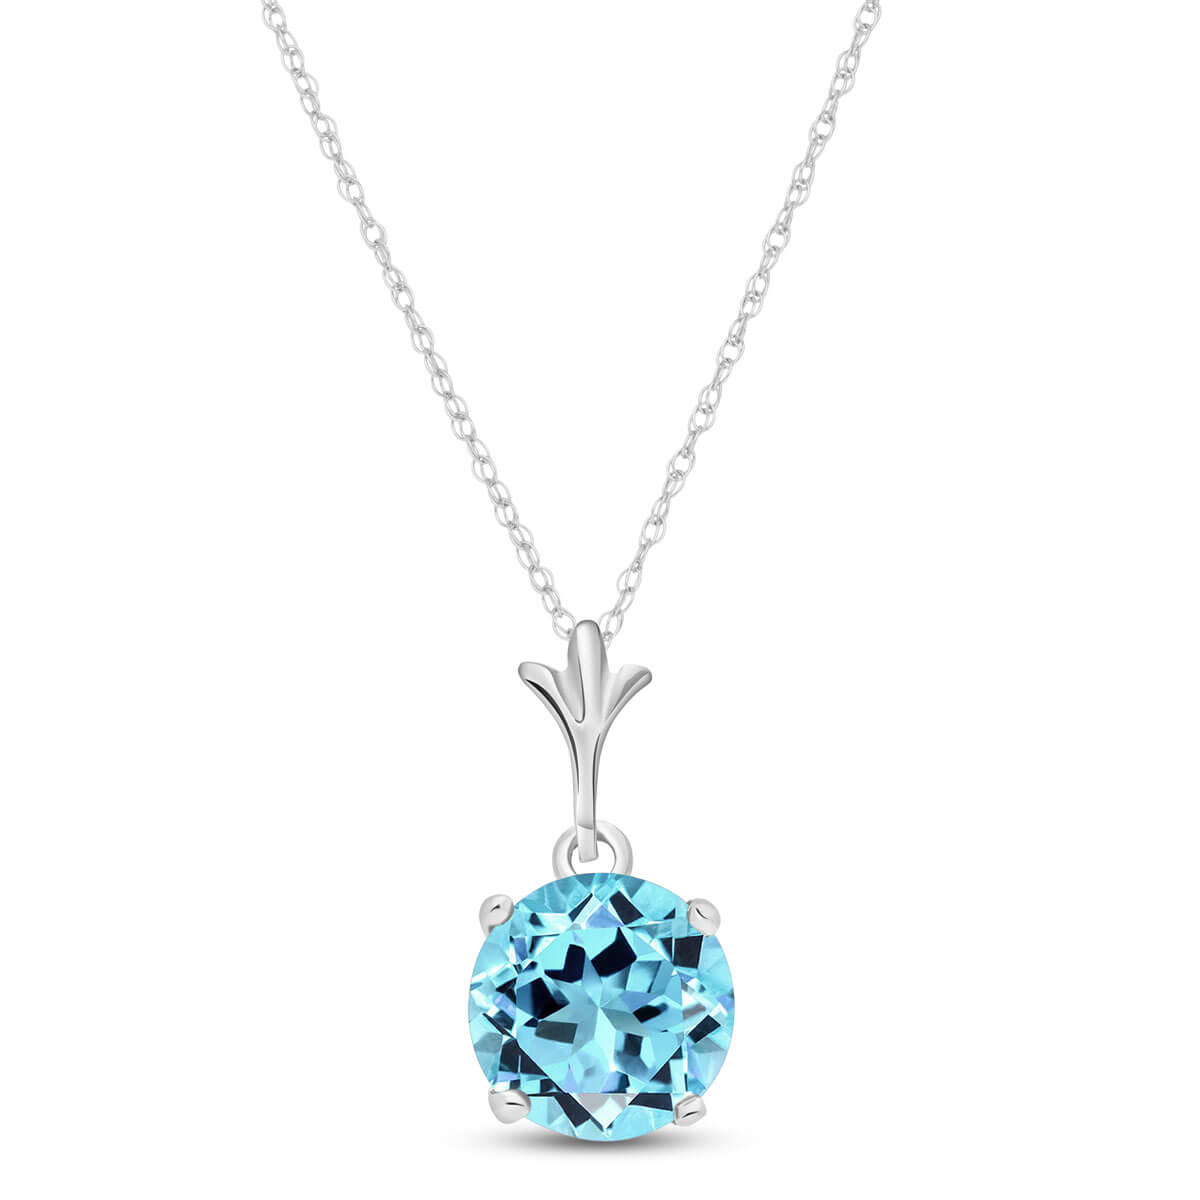 Blue Topaz Drop Pendant Necklace 1.15 ct in 9ct White Gold